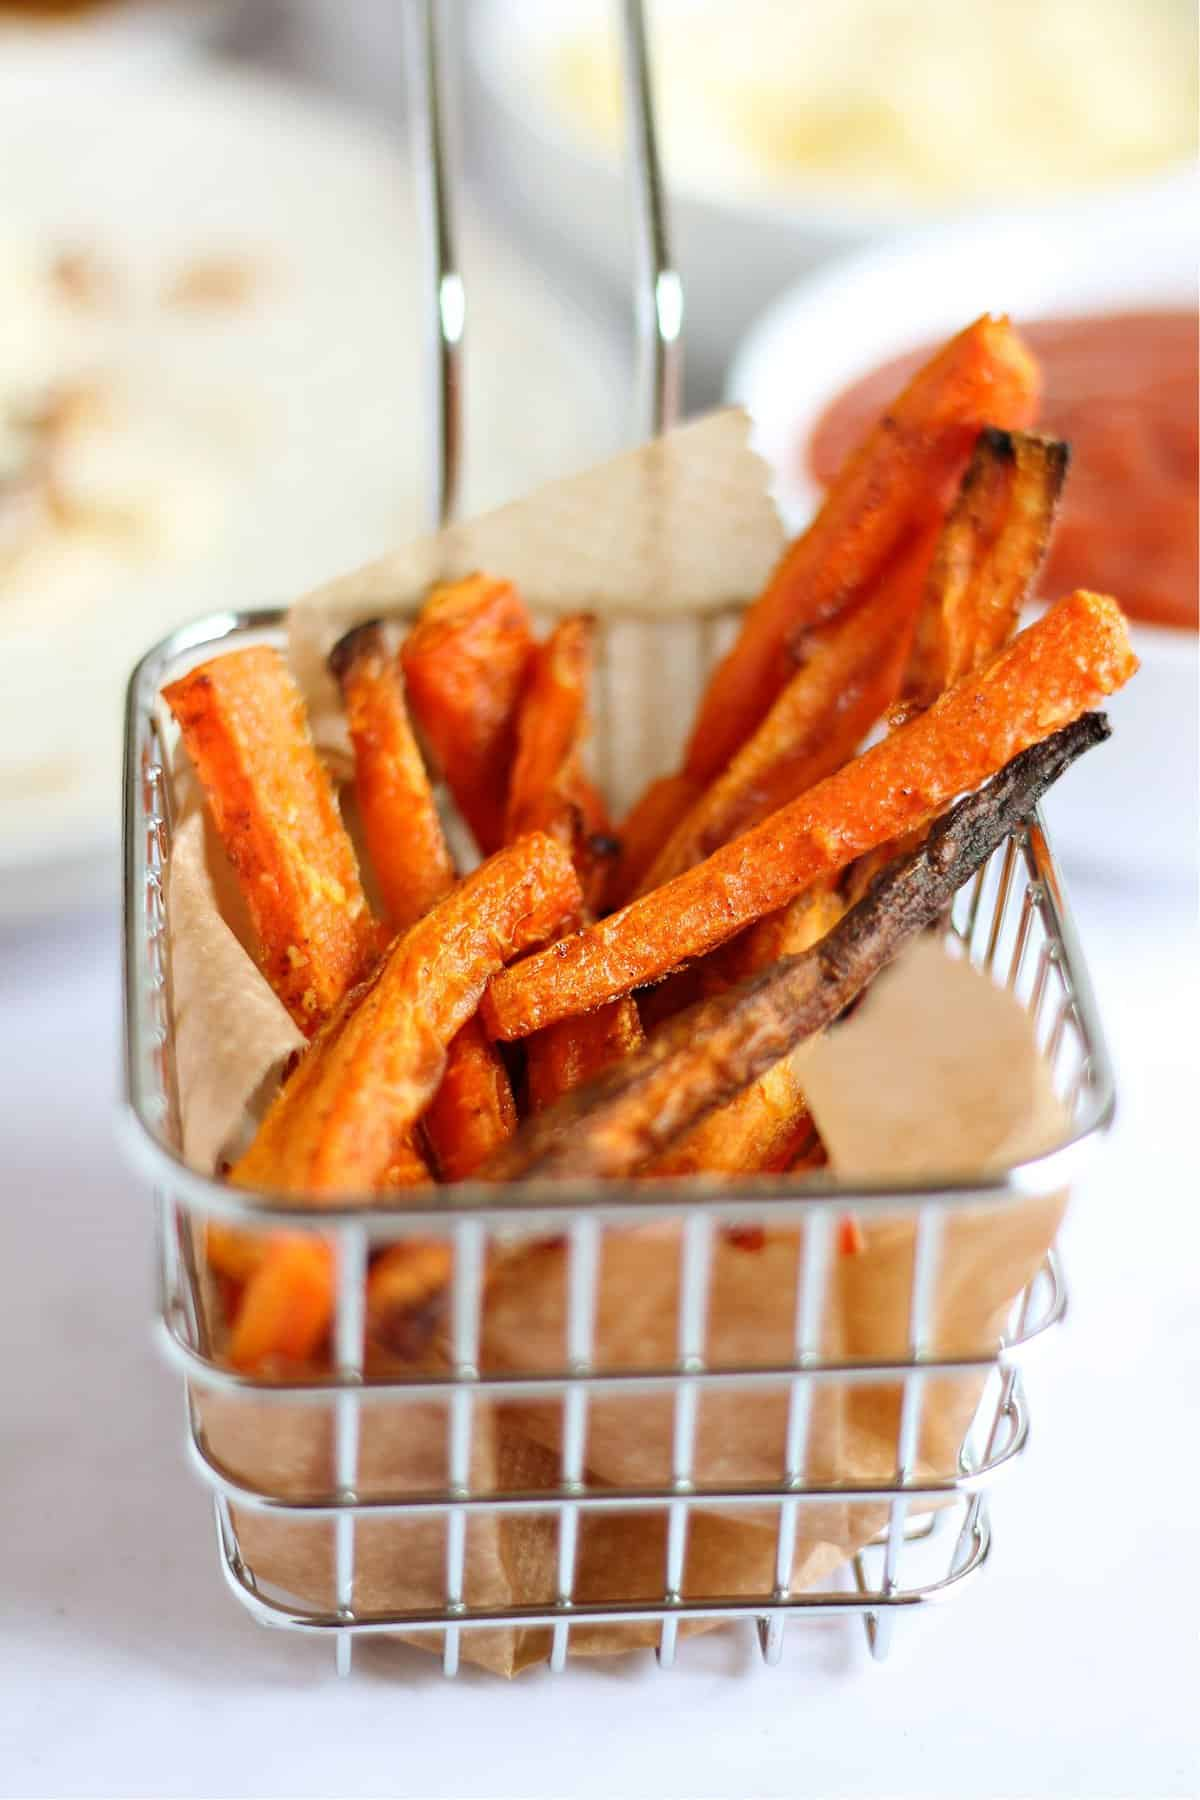 A portion of baked carrot fries